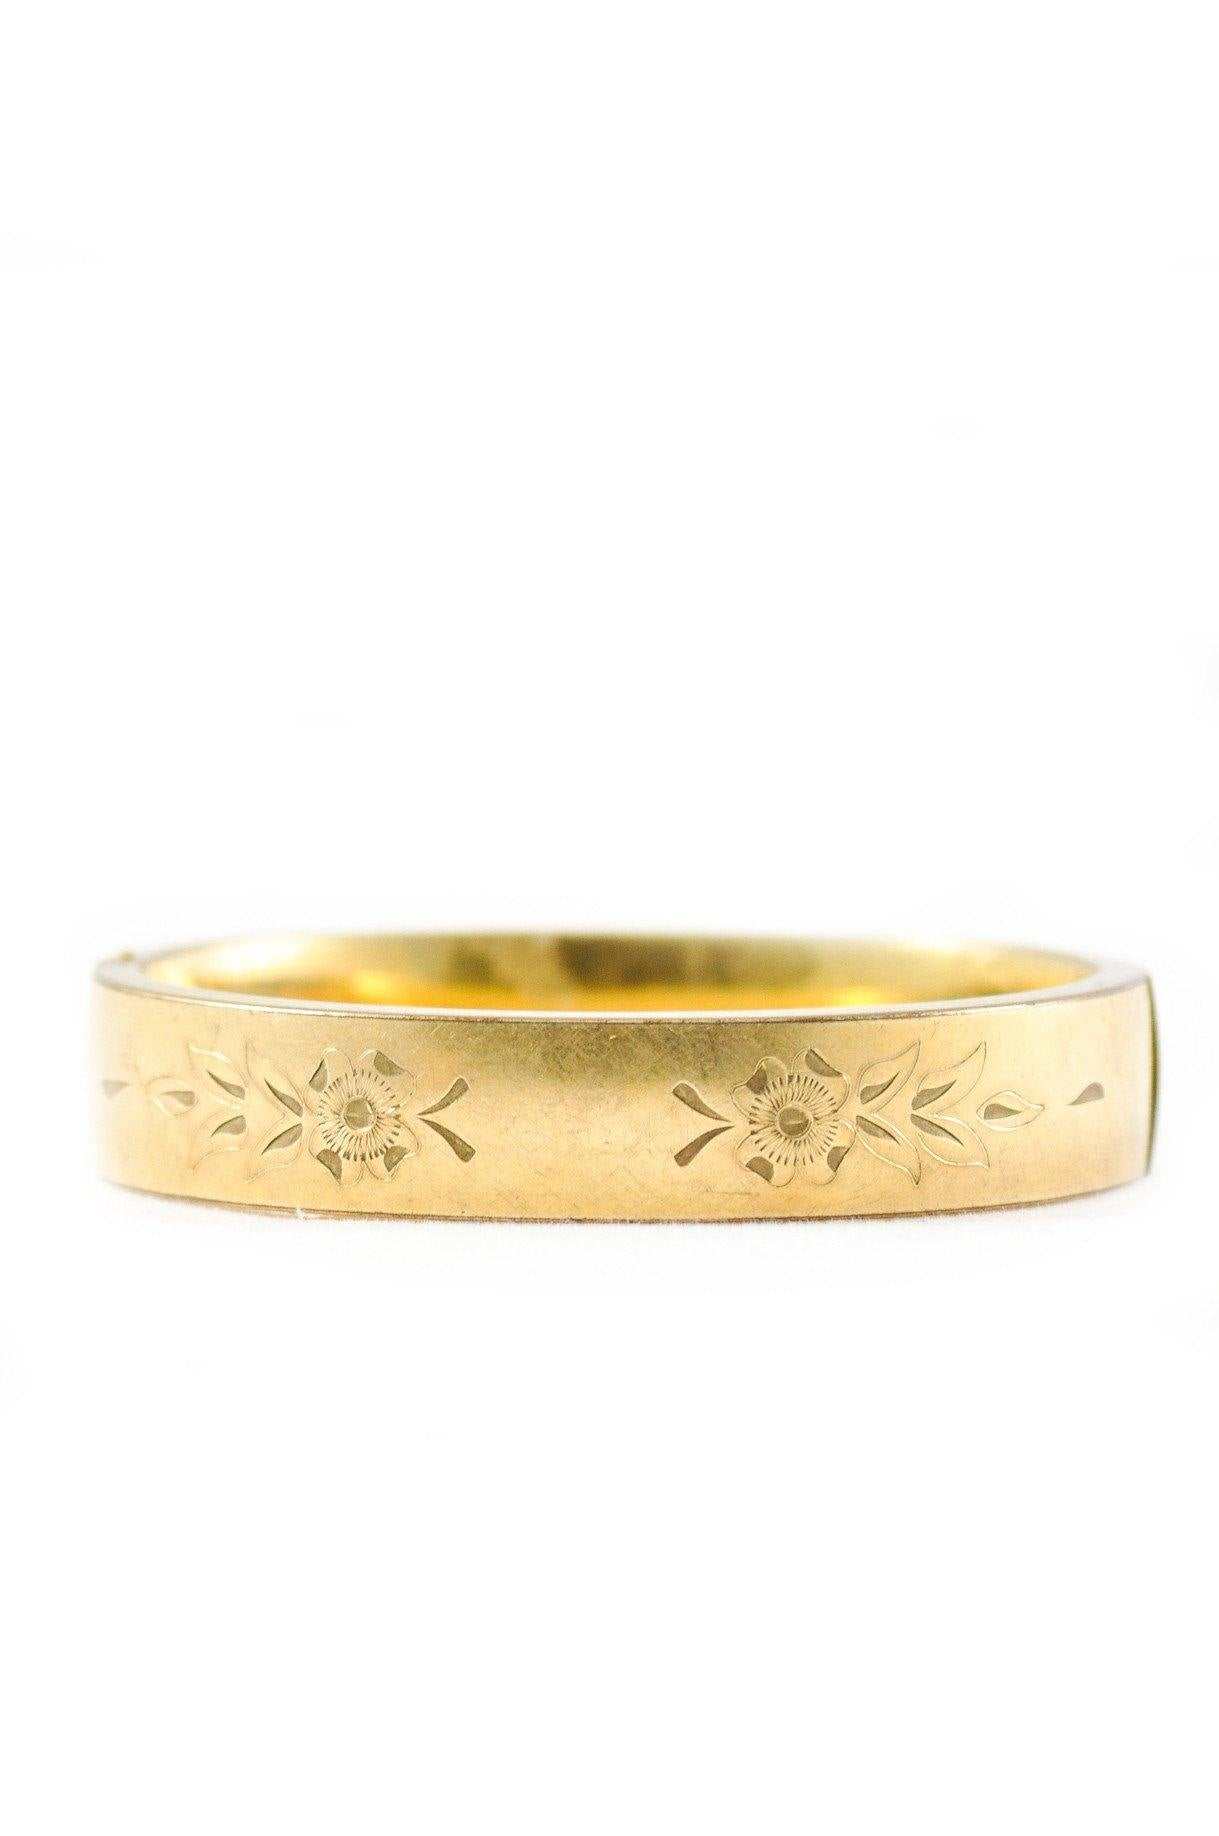 70's__Vintage__Engraved Floral Bangle